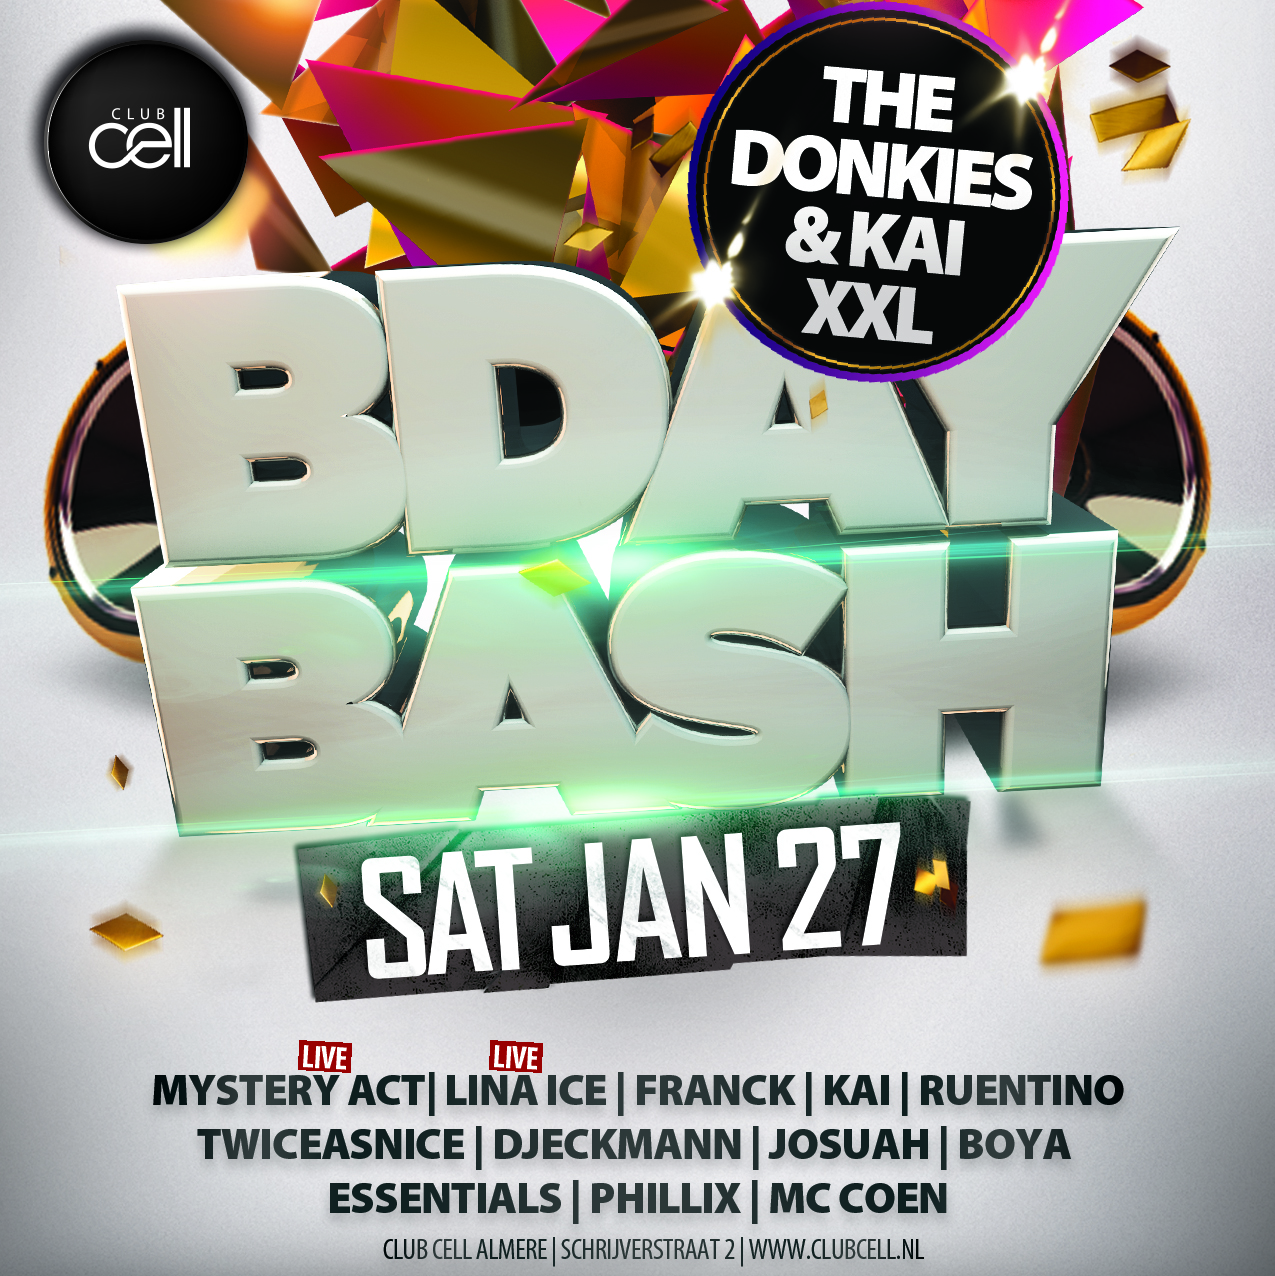 Donkies & Kai Bday Bash XXL